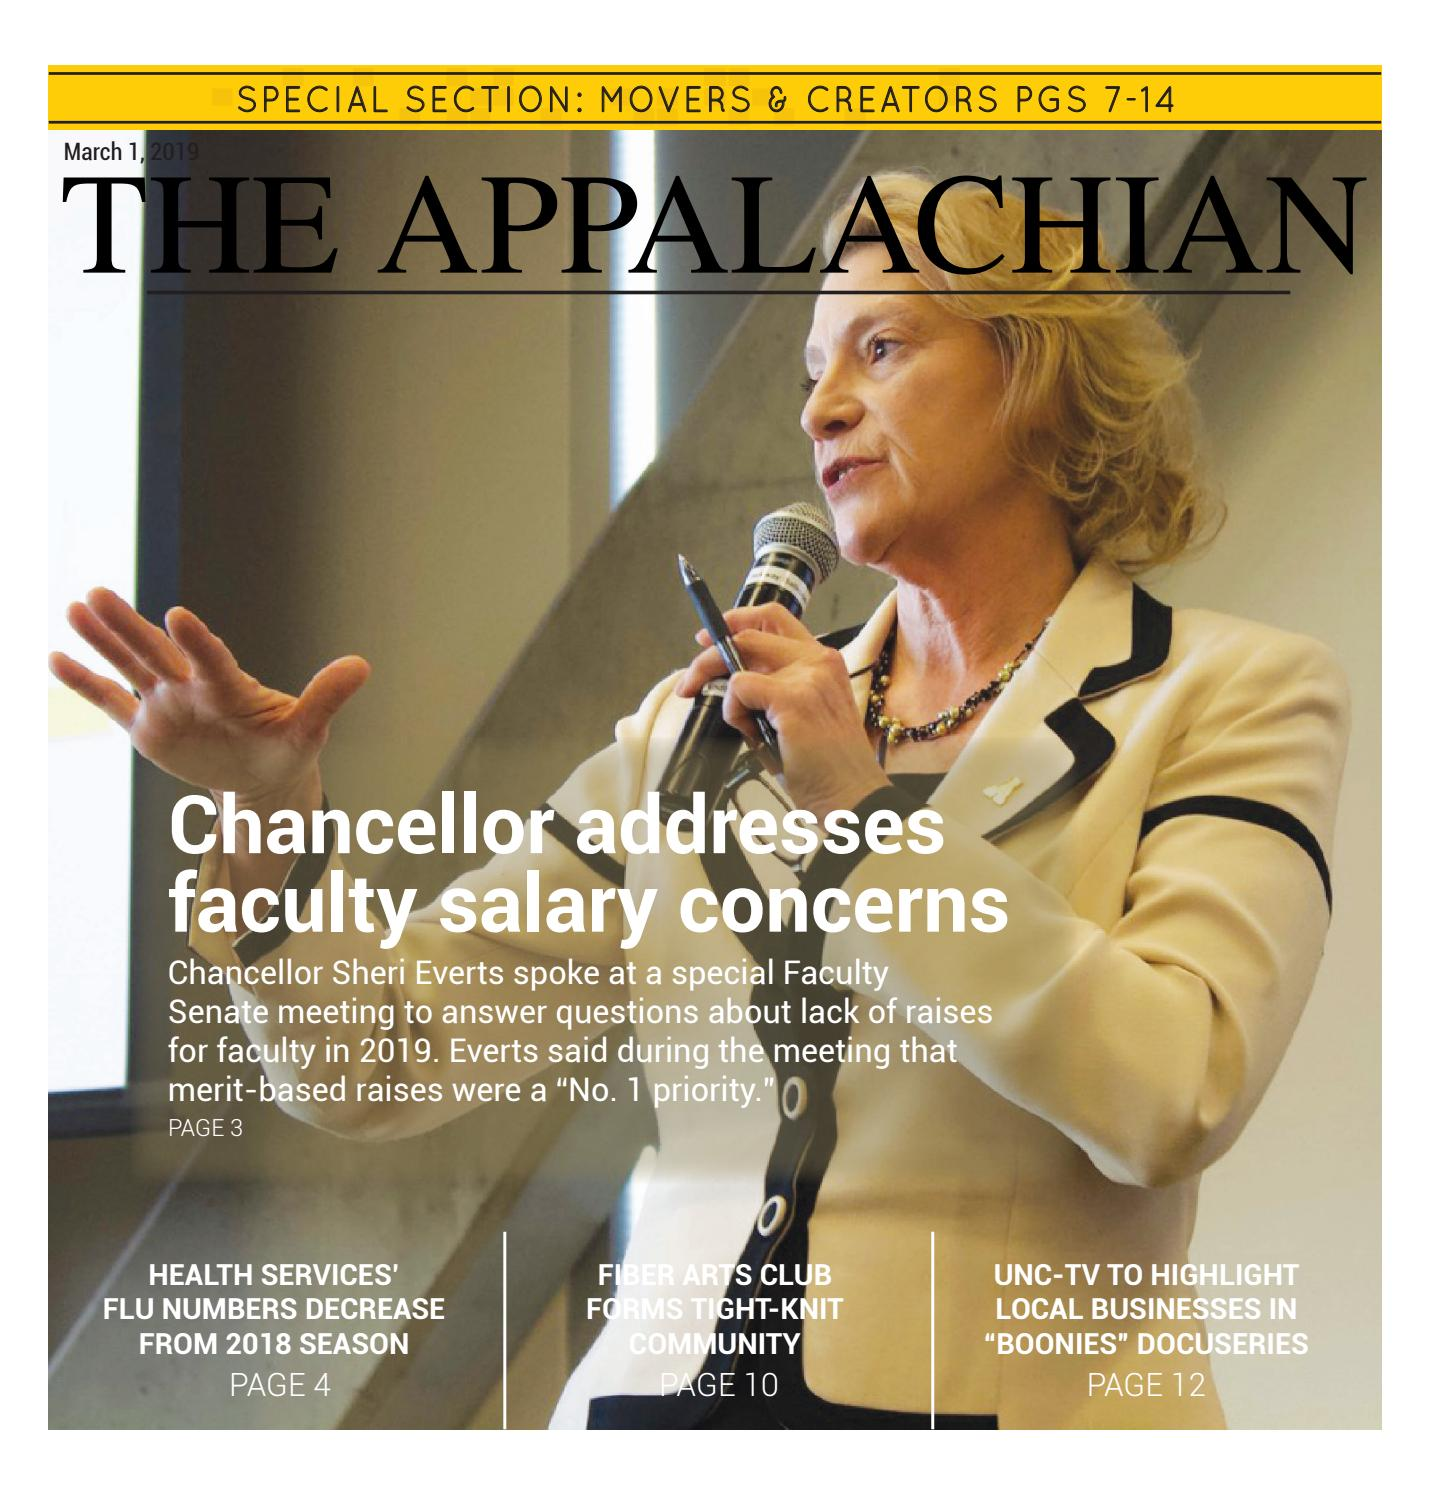 March 1, 2019 by The Appalachian - issuu